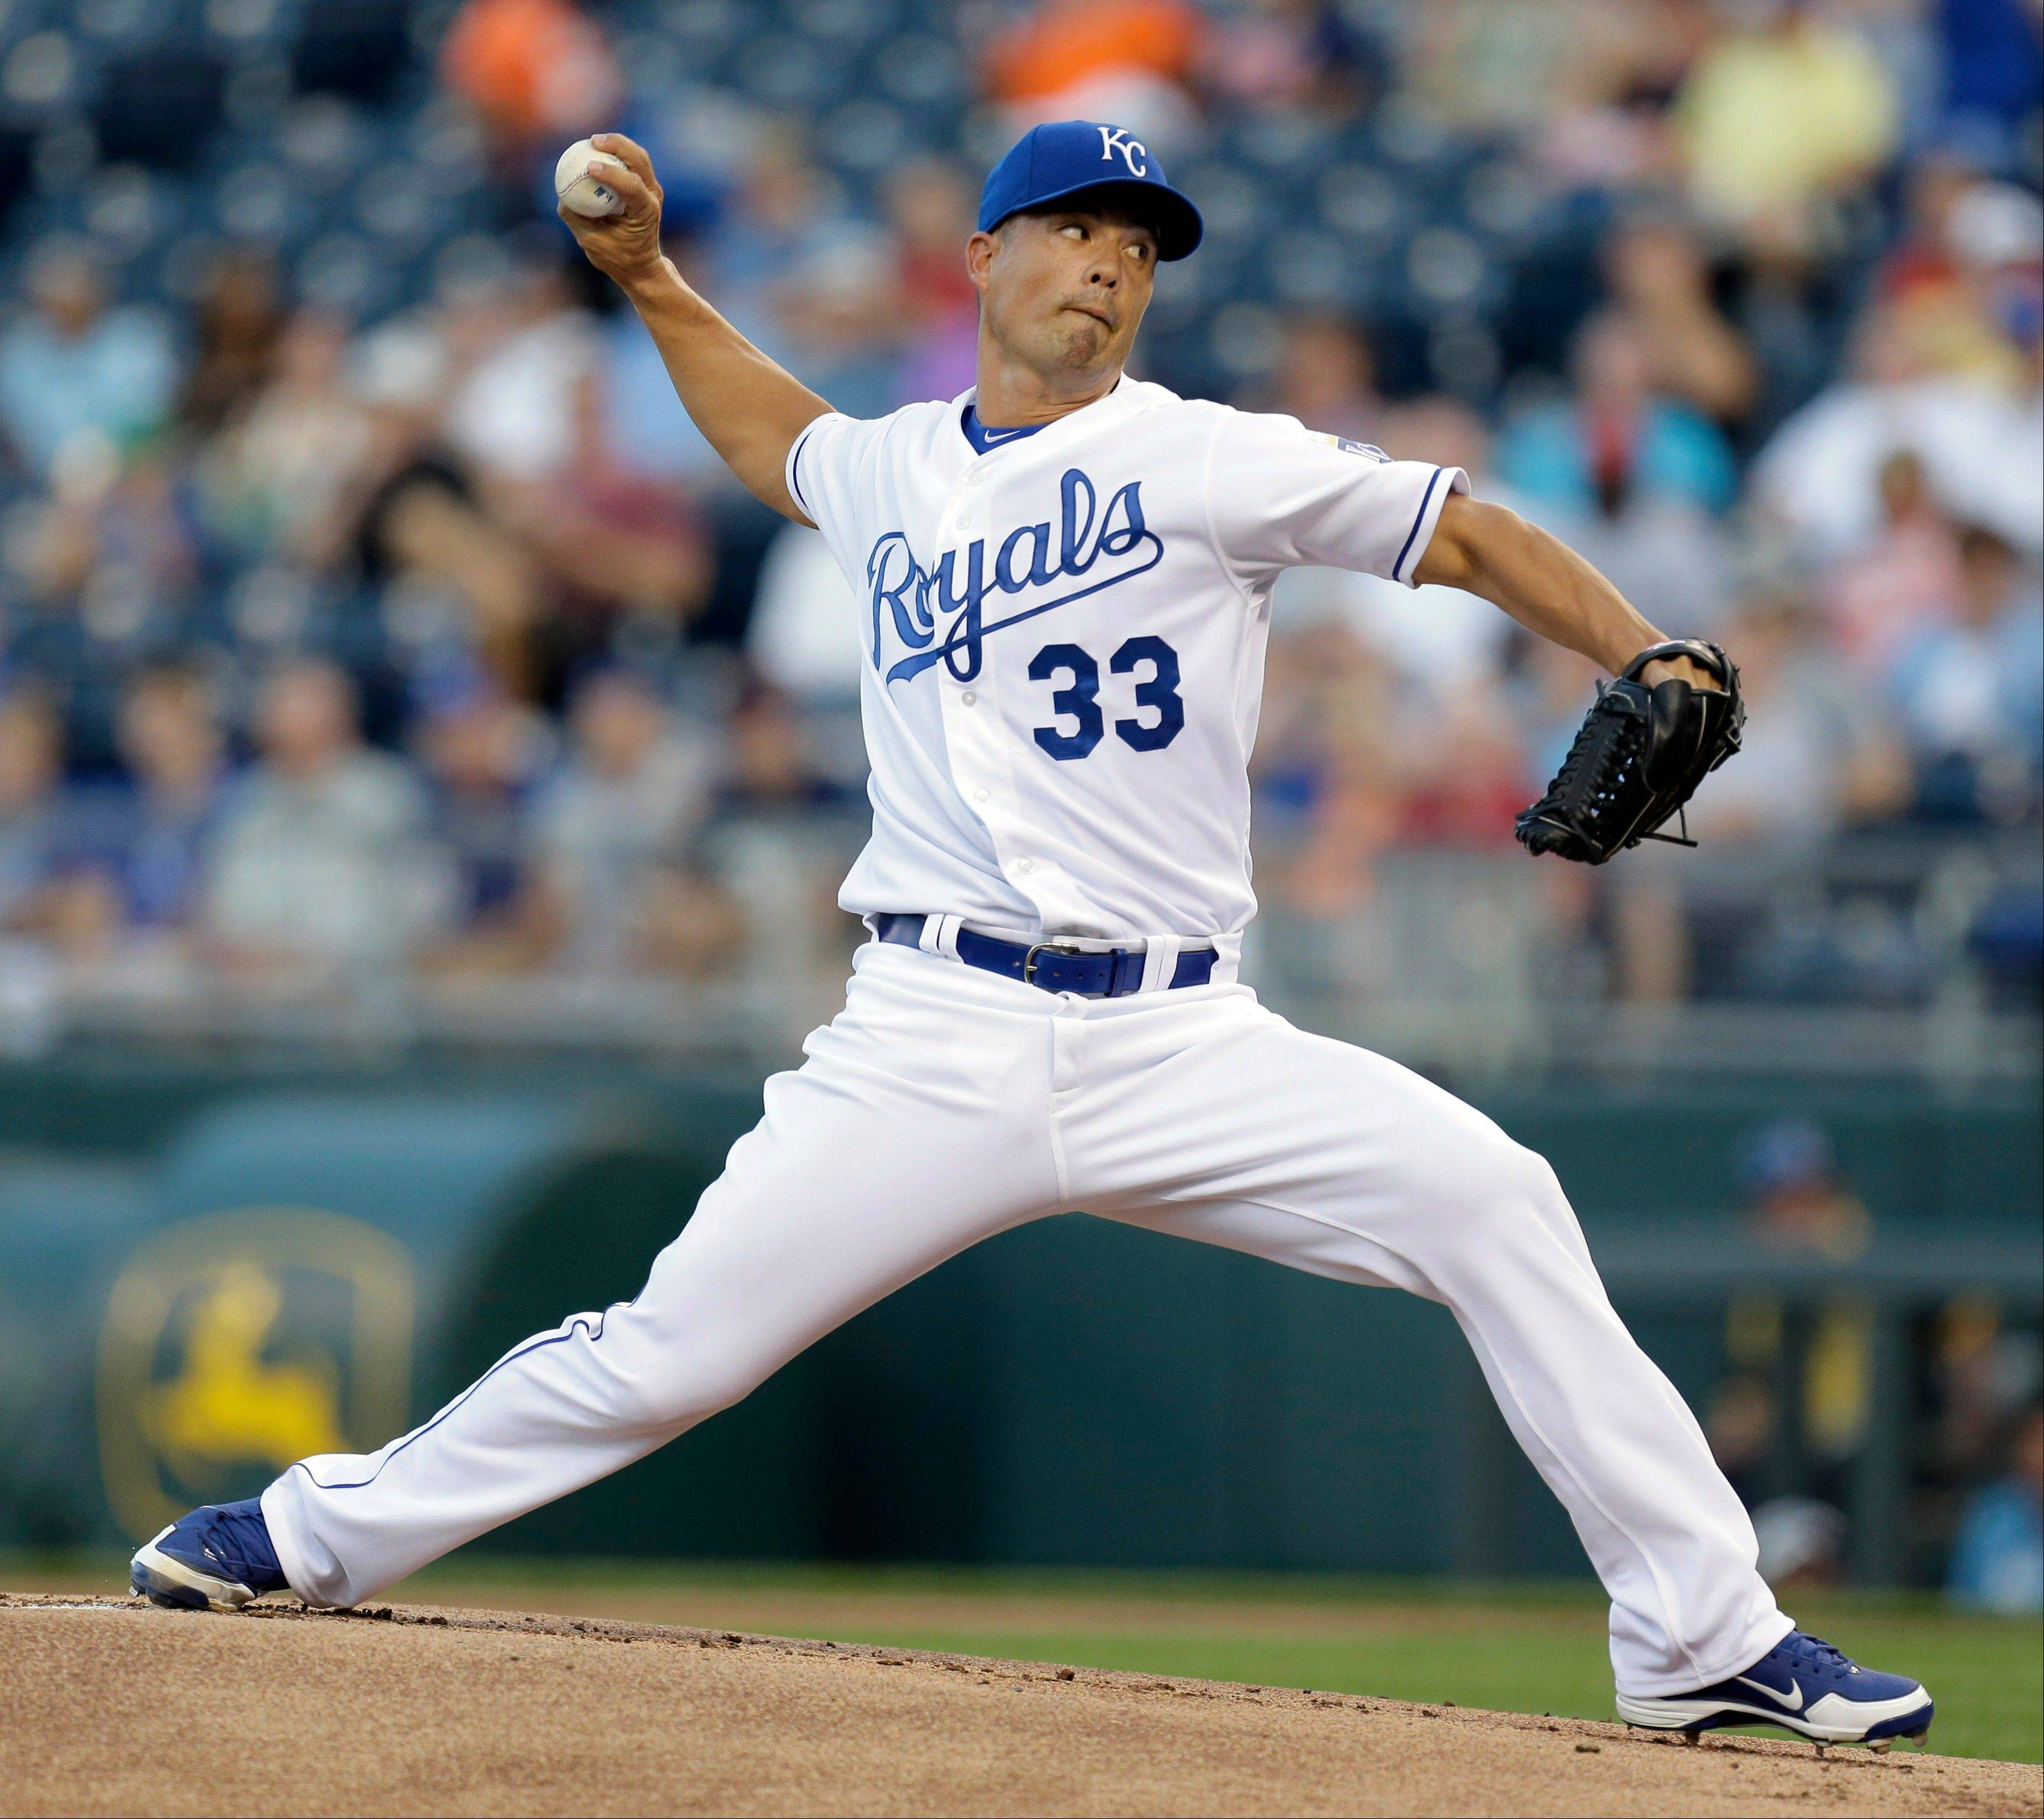 Kansas City Royals starting pitcher Jeremy Guthrie walked none and struck out three Thursday in a home win over Detroit.